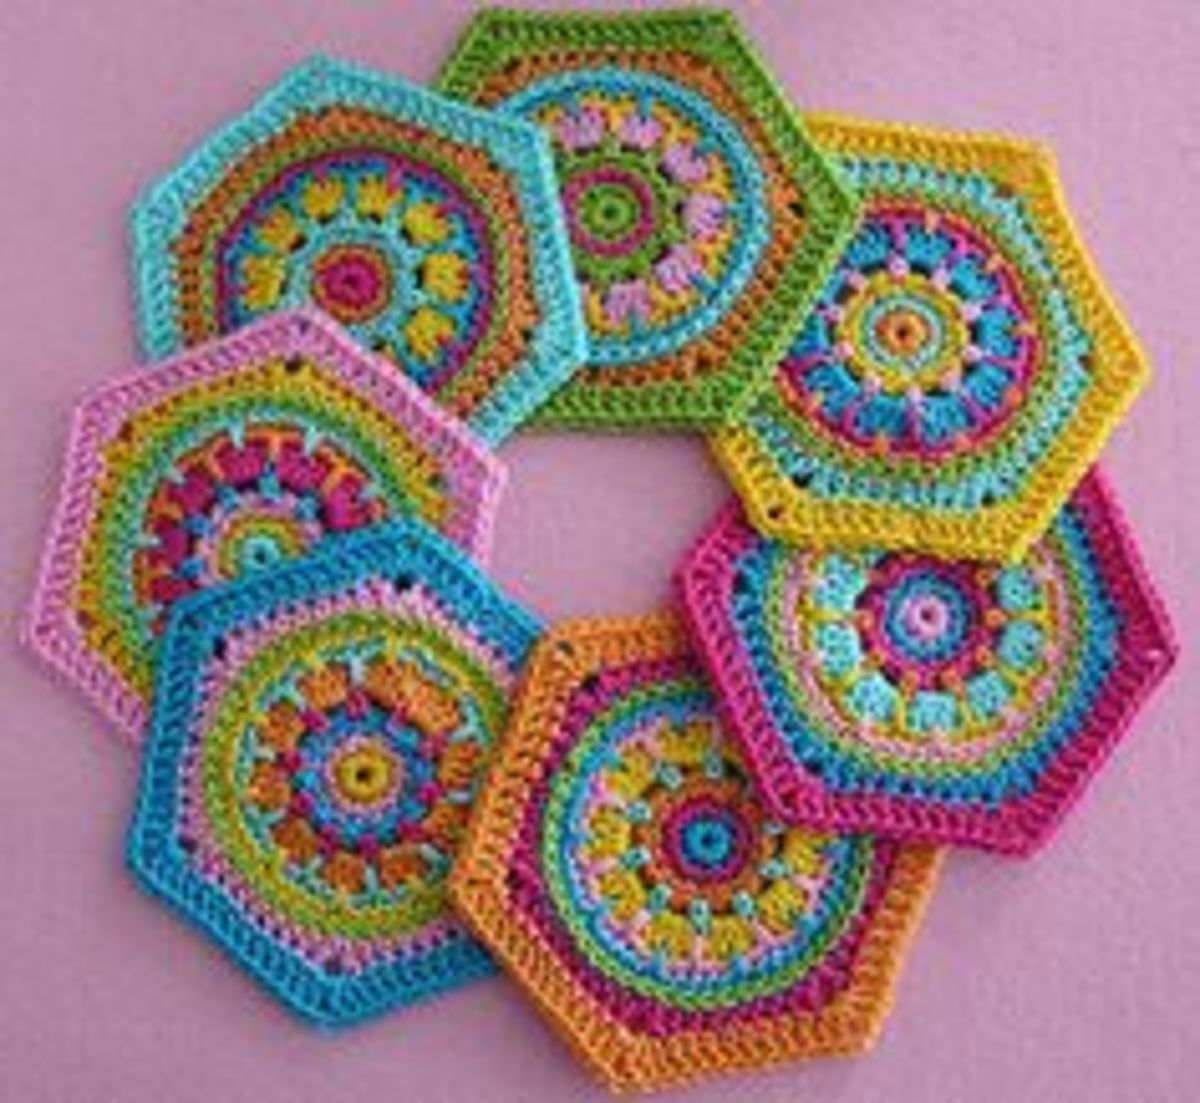 Crocheting to the Next Stage: 5 Projects for Beginners to use Granny Squares